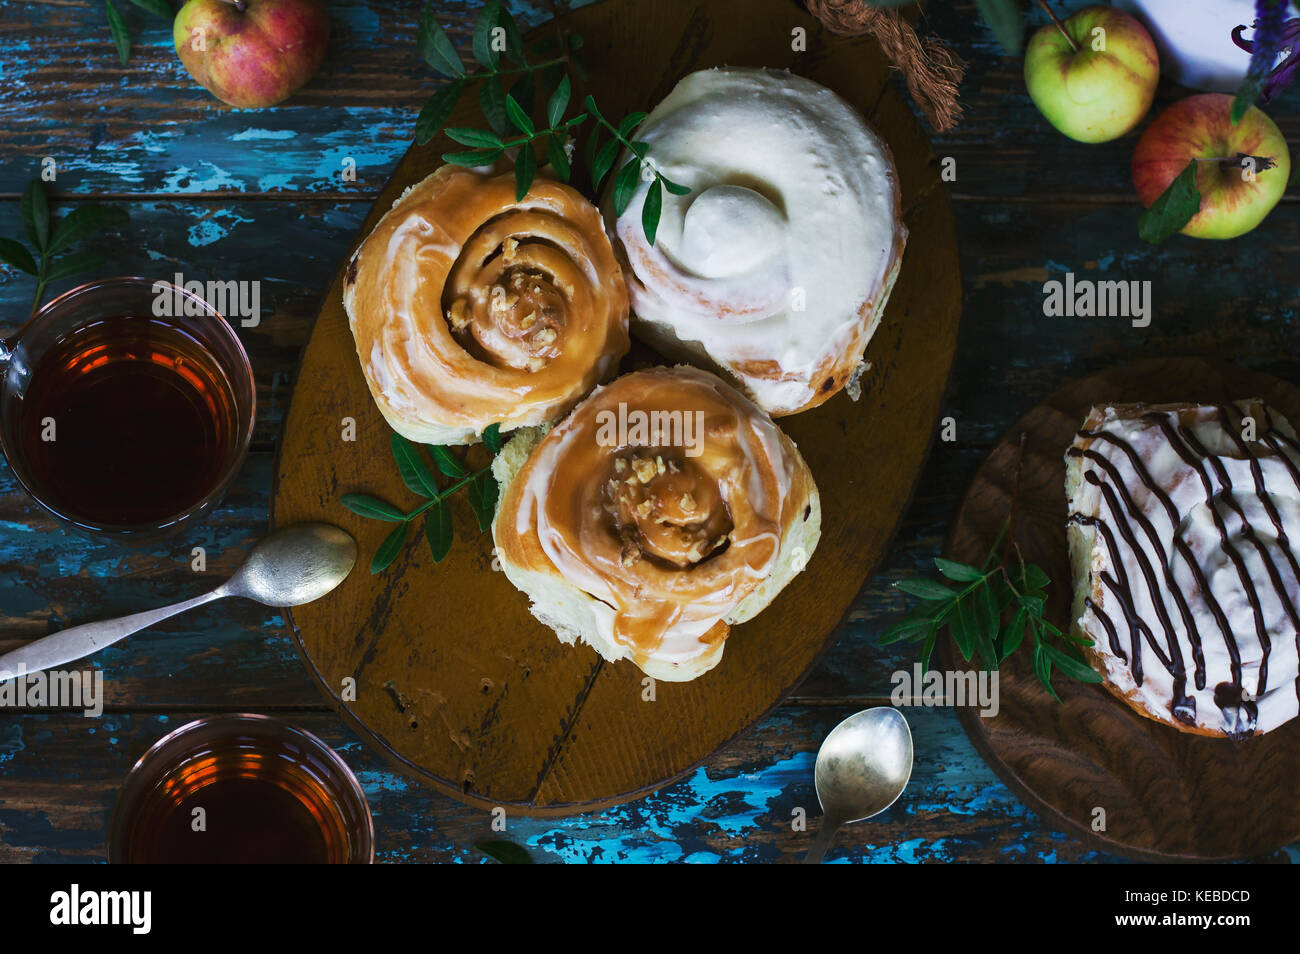 Fresh baked cinnamon rolls with frosting, apples and tea on the shabby background. View from top - Stock Image